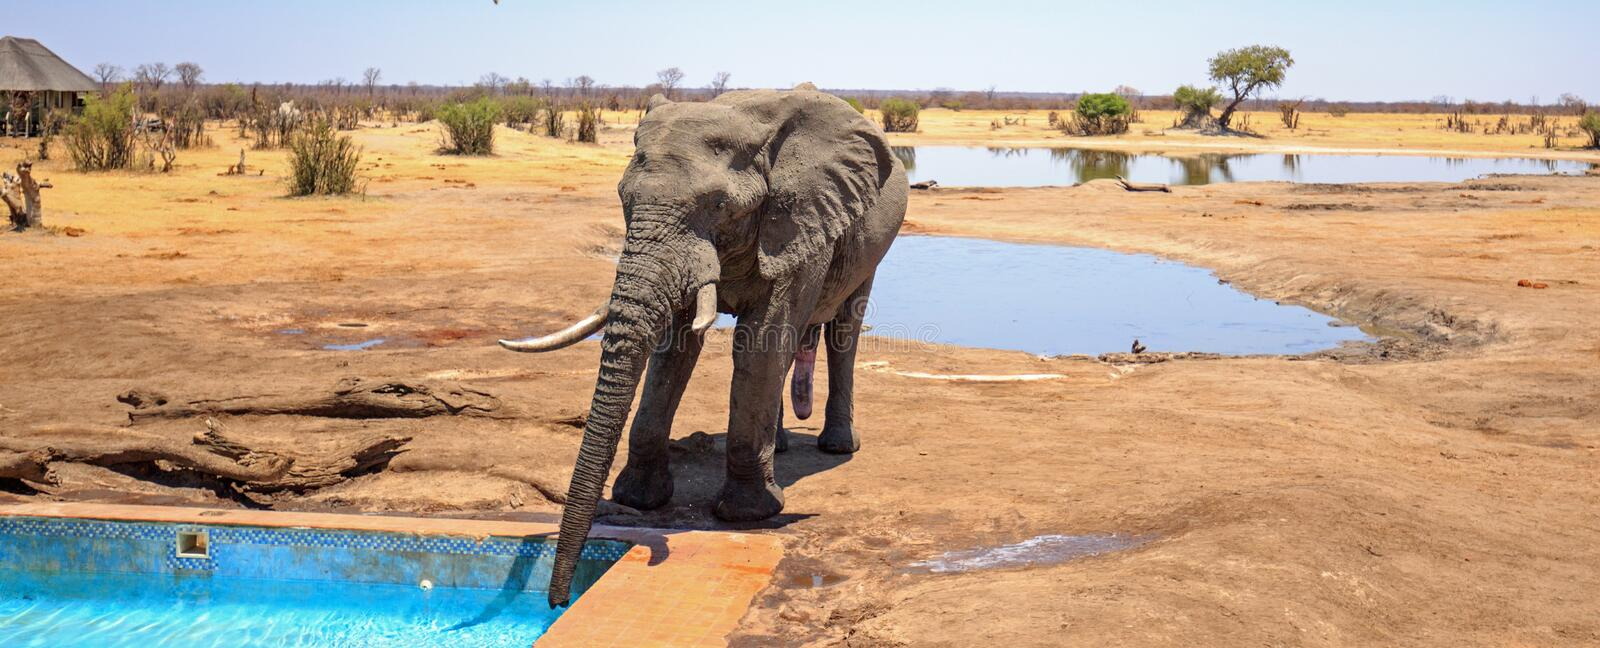 Large African Elephant drinking from the camp swimming pool in Hwange National Park. A bull elephant visits camp to drink from the swimming pool, with a thatched stock photo